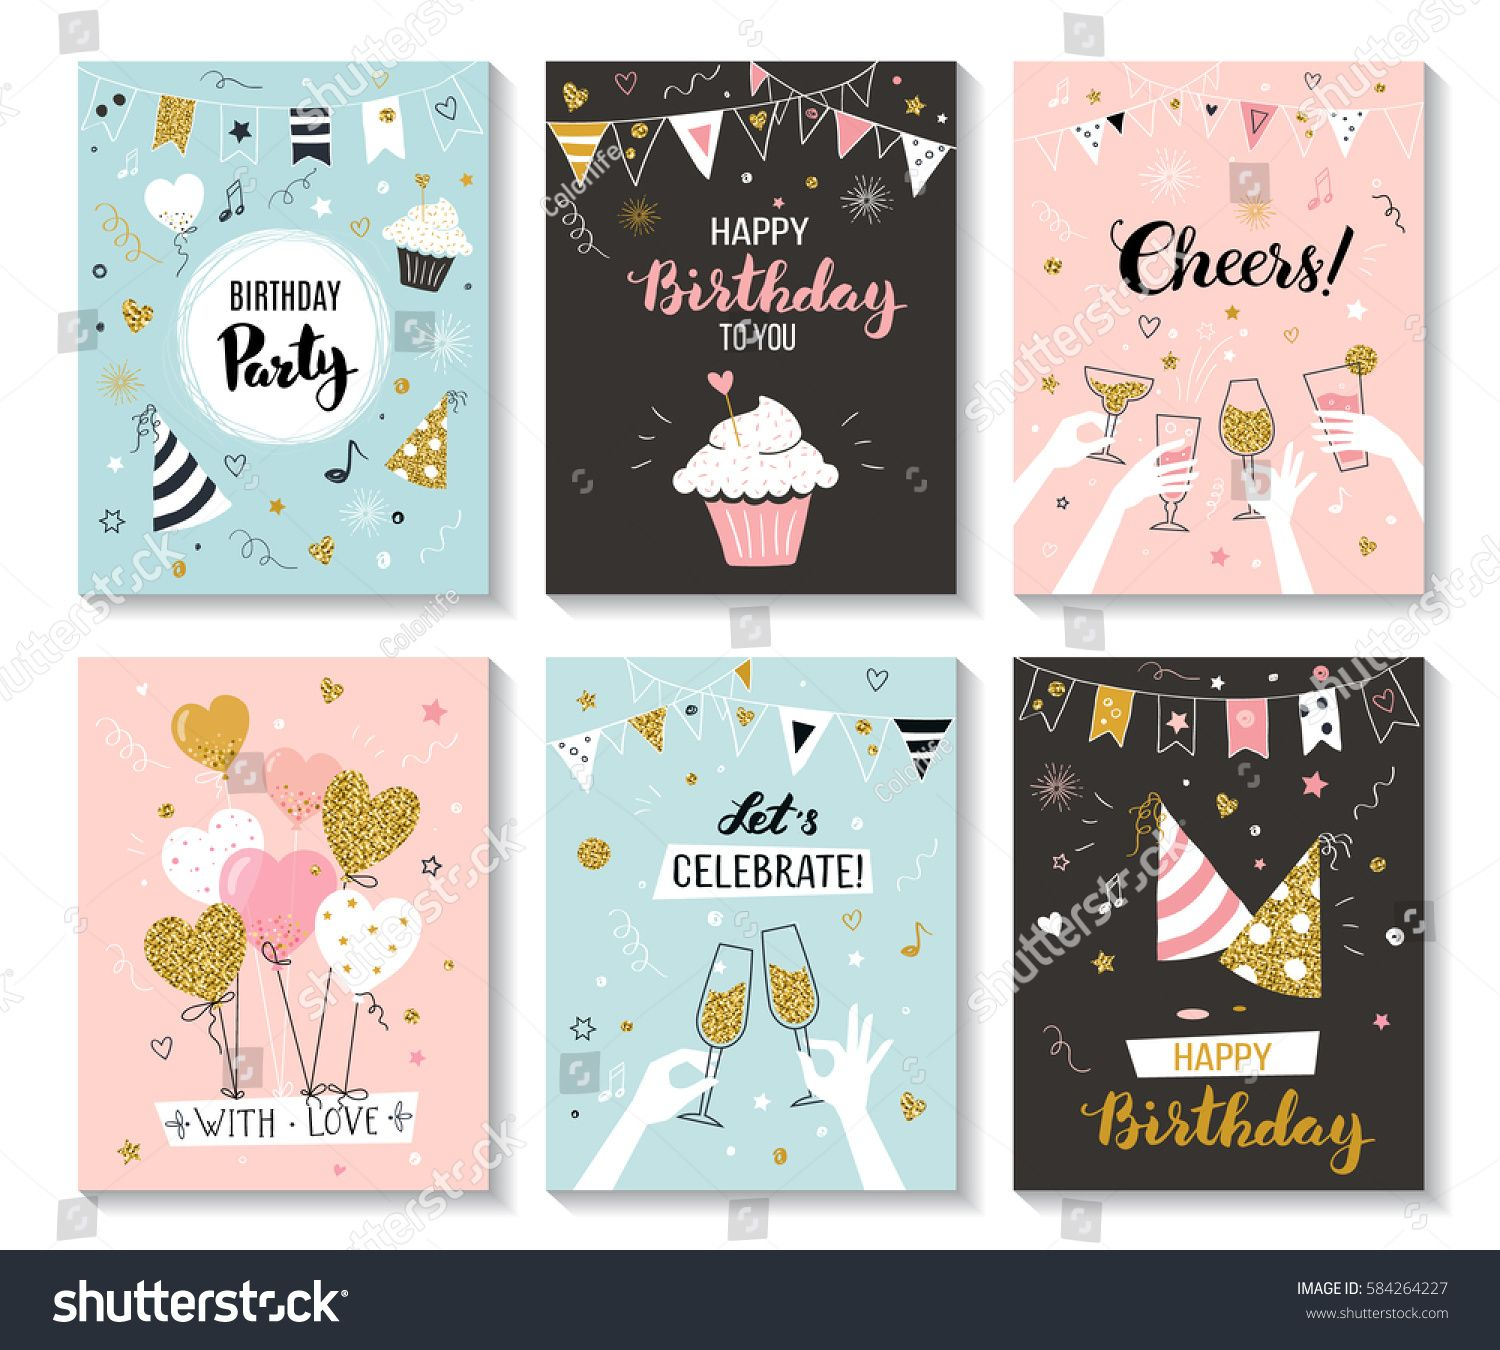 happy birthday greeting card and party invitation templates vector